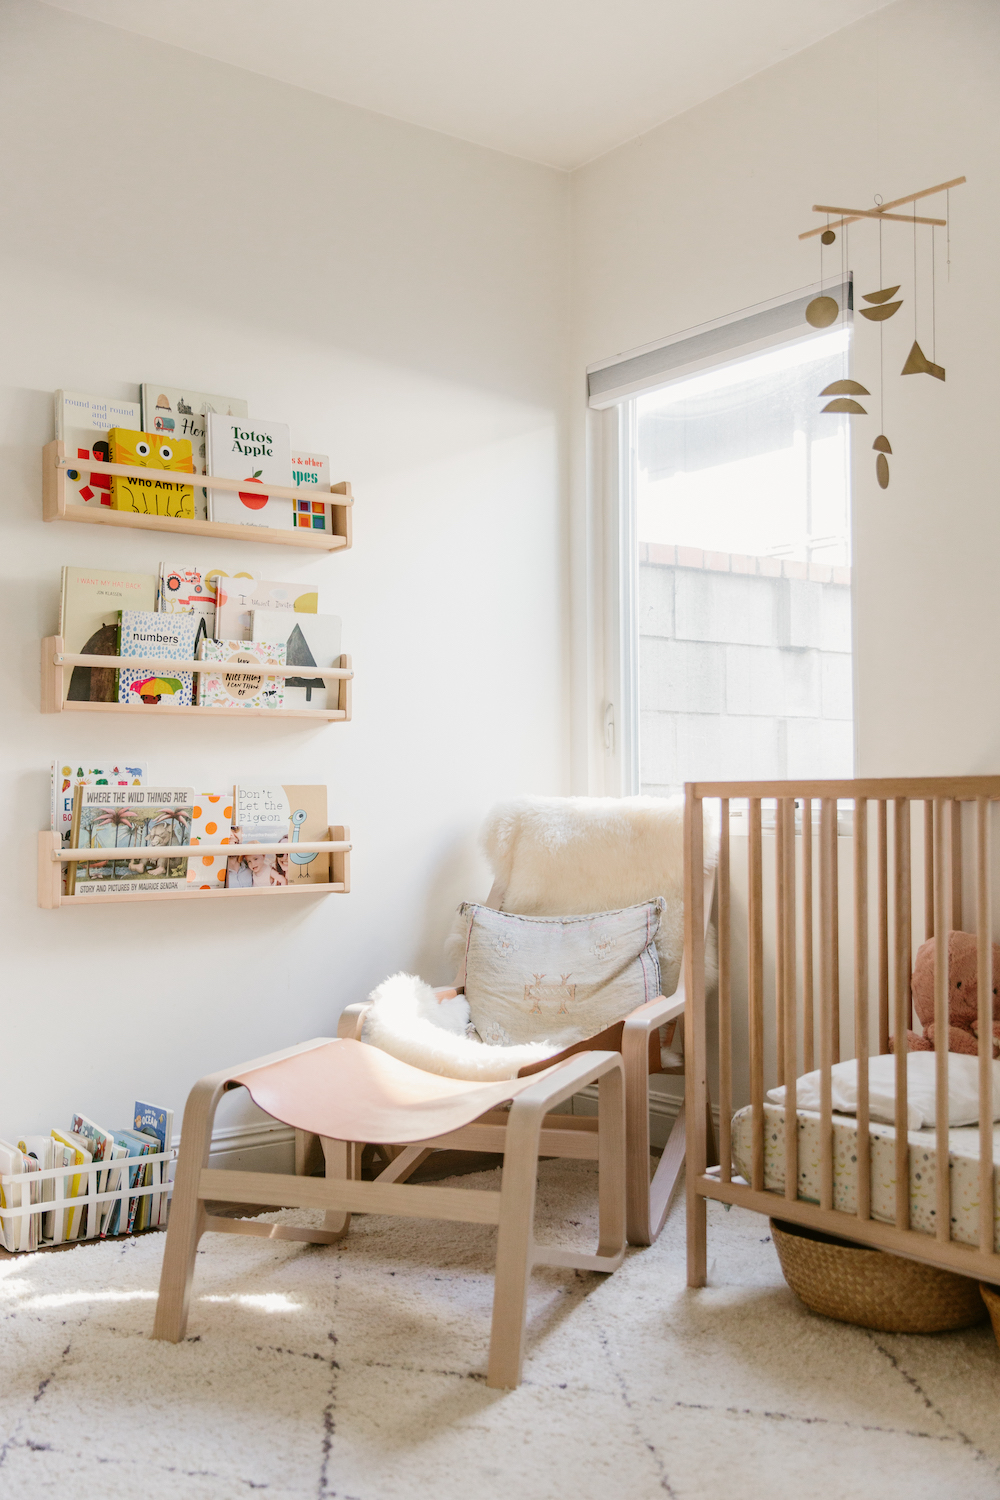 molly madfis home, almost makes perfect, california home, neutral home decor, nursery, baby, chic baby decor